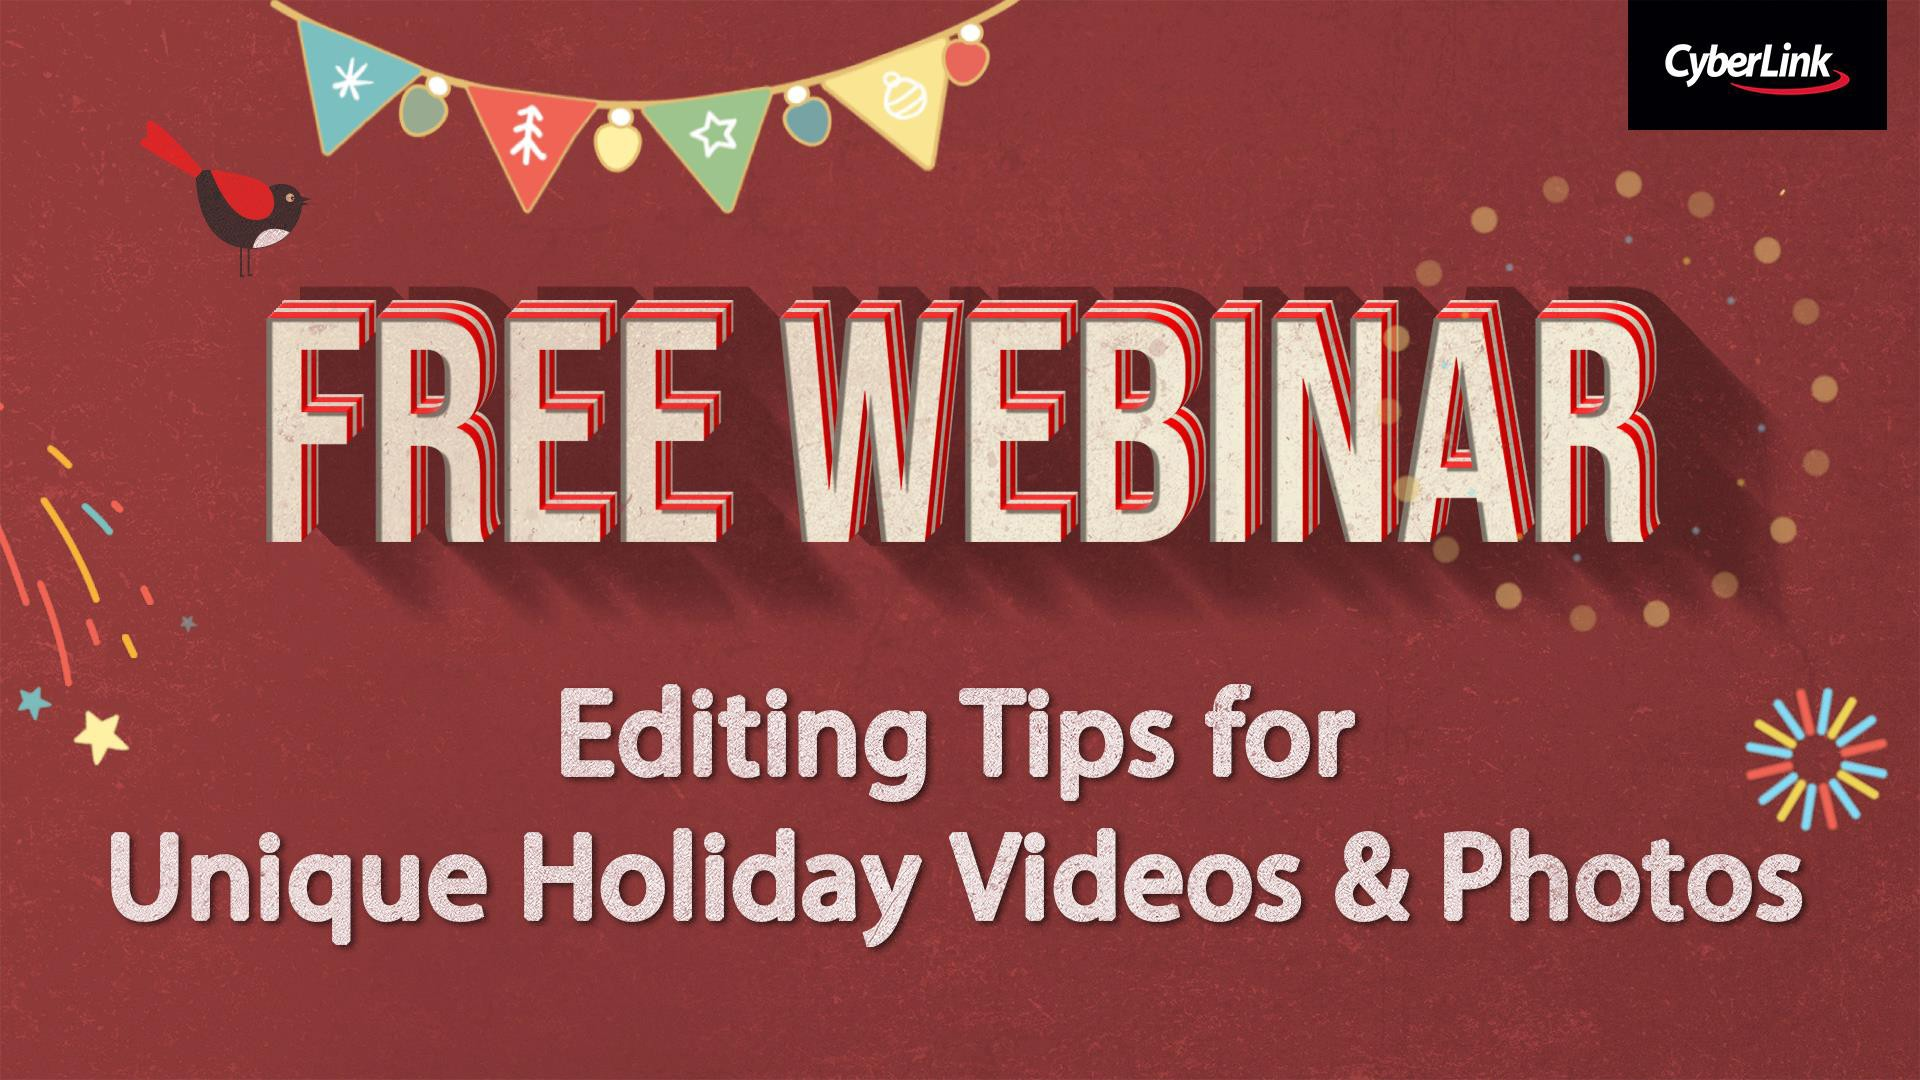 Editing Tips for Unique Holiday Videos & Photos